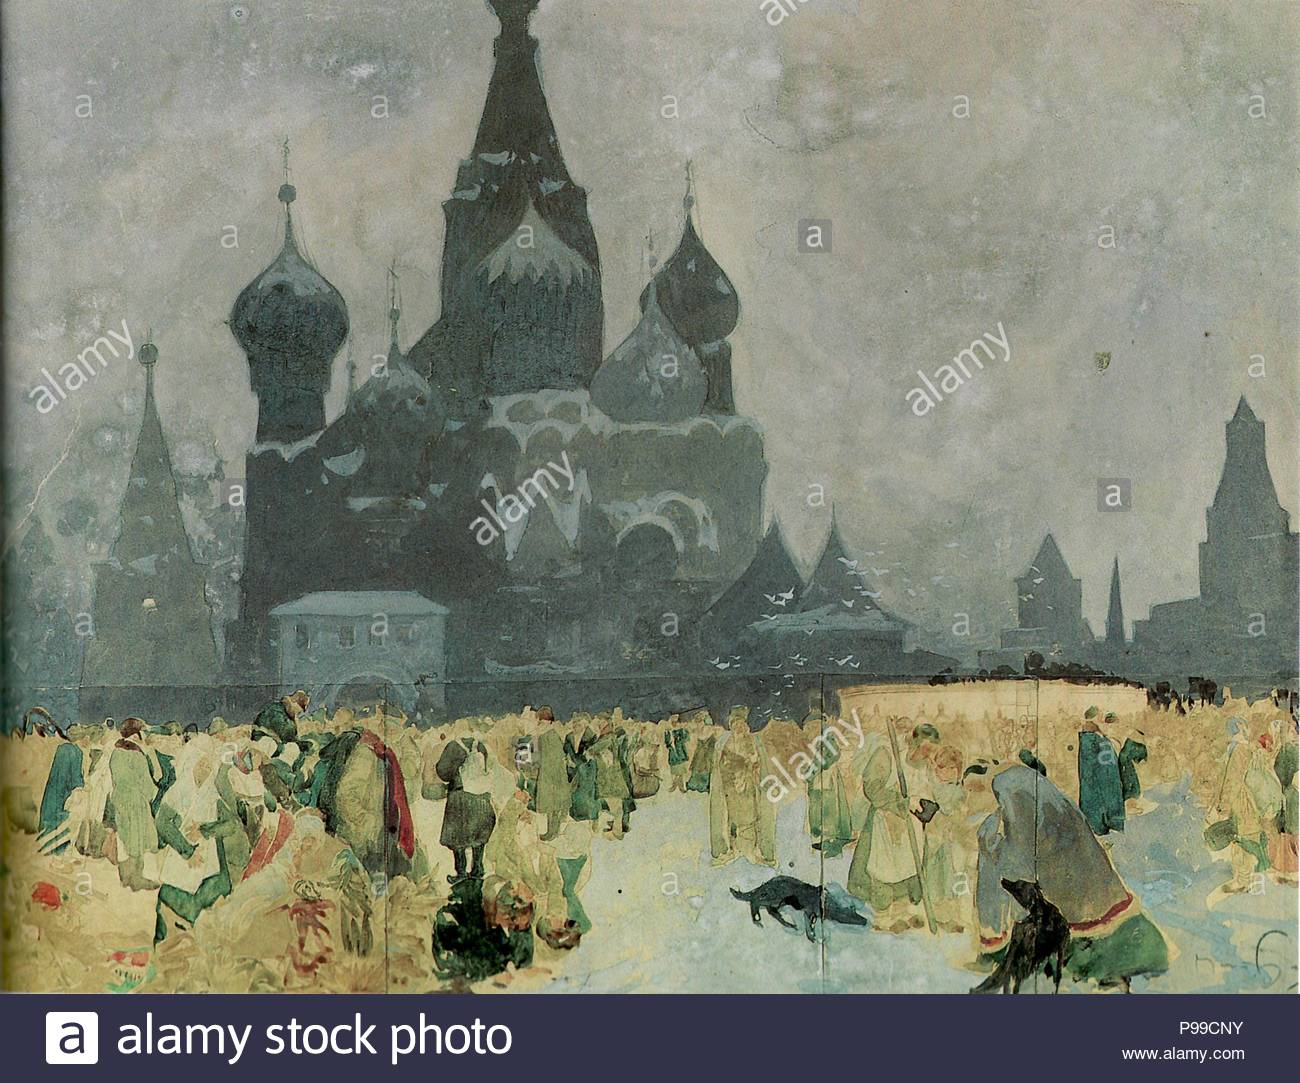 The Abolition of Serfdom in Russia (Study for The Slav Epic). Museum: National Gallery, Prague. - Stock Image